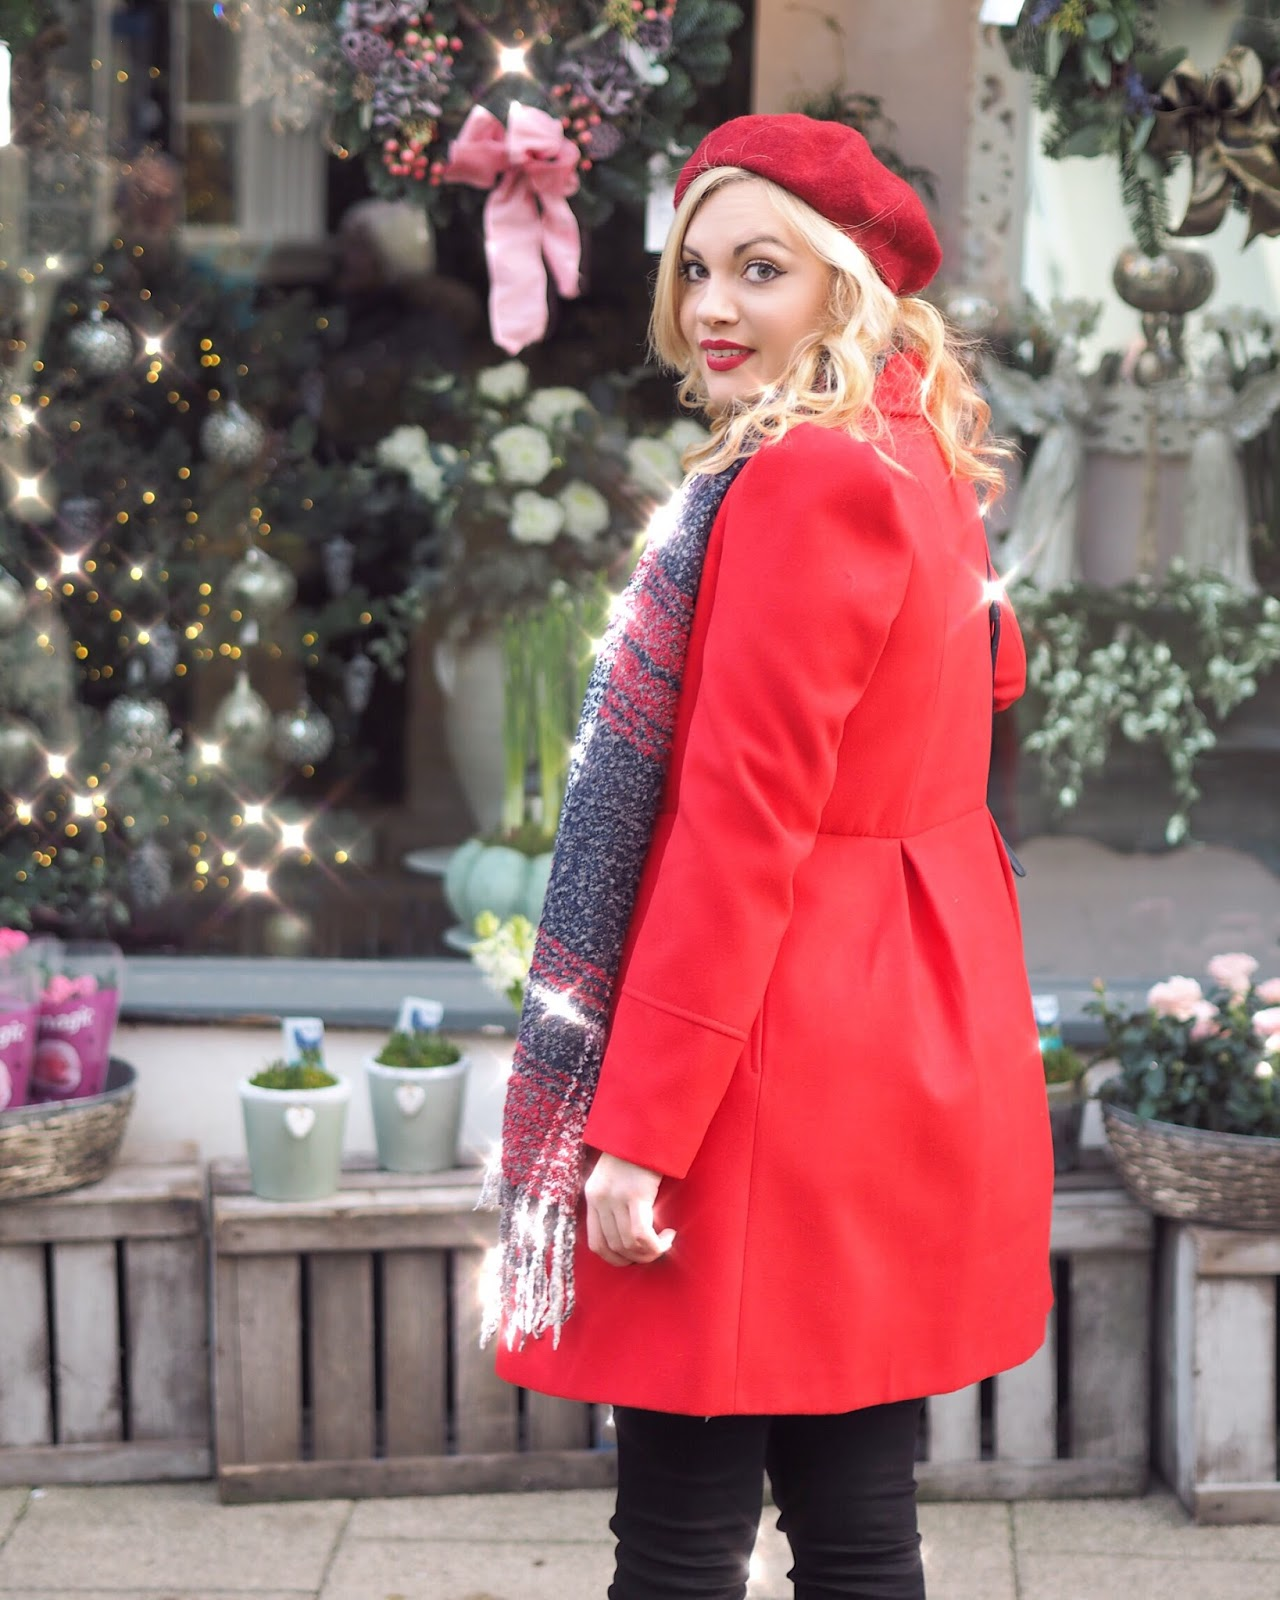 Santa Claus is Coming to Town, Katie Kirk Loves, UK Blogger, Fashion Blogger, Fashion Influencer, Style Blogger, Style Influencer, Outfit Ideas, Outfit Post, Festive Outfits, Christmas Outfit Ideas, Christmas Eve Outfit, Oasis Fashion, Oasis Sale, Christmas Jumper, The Perfect Red Coat, Christmas Red Coat, Happy Christmas Eve